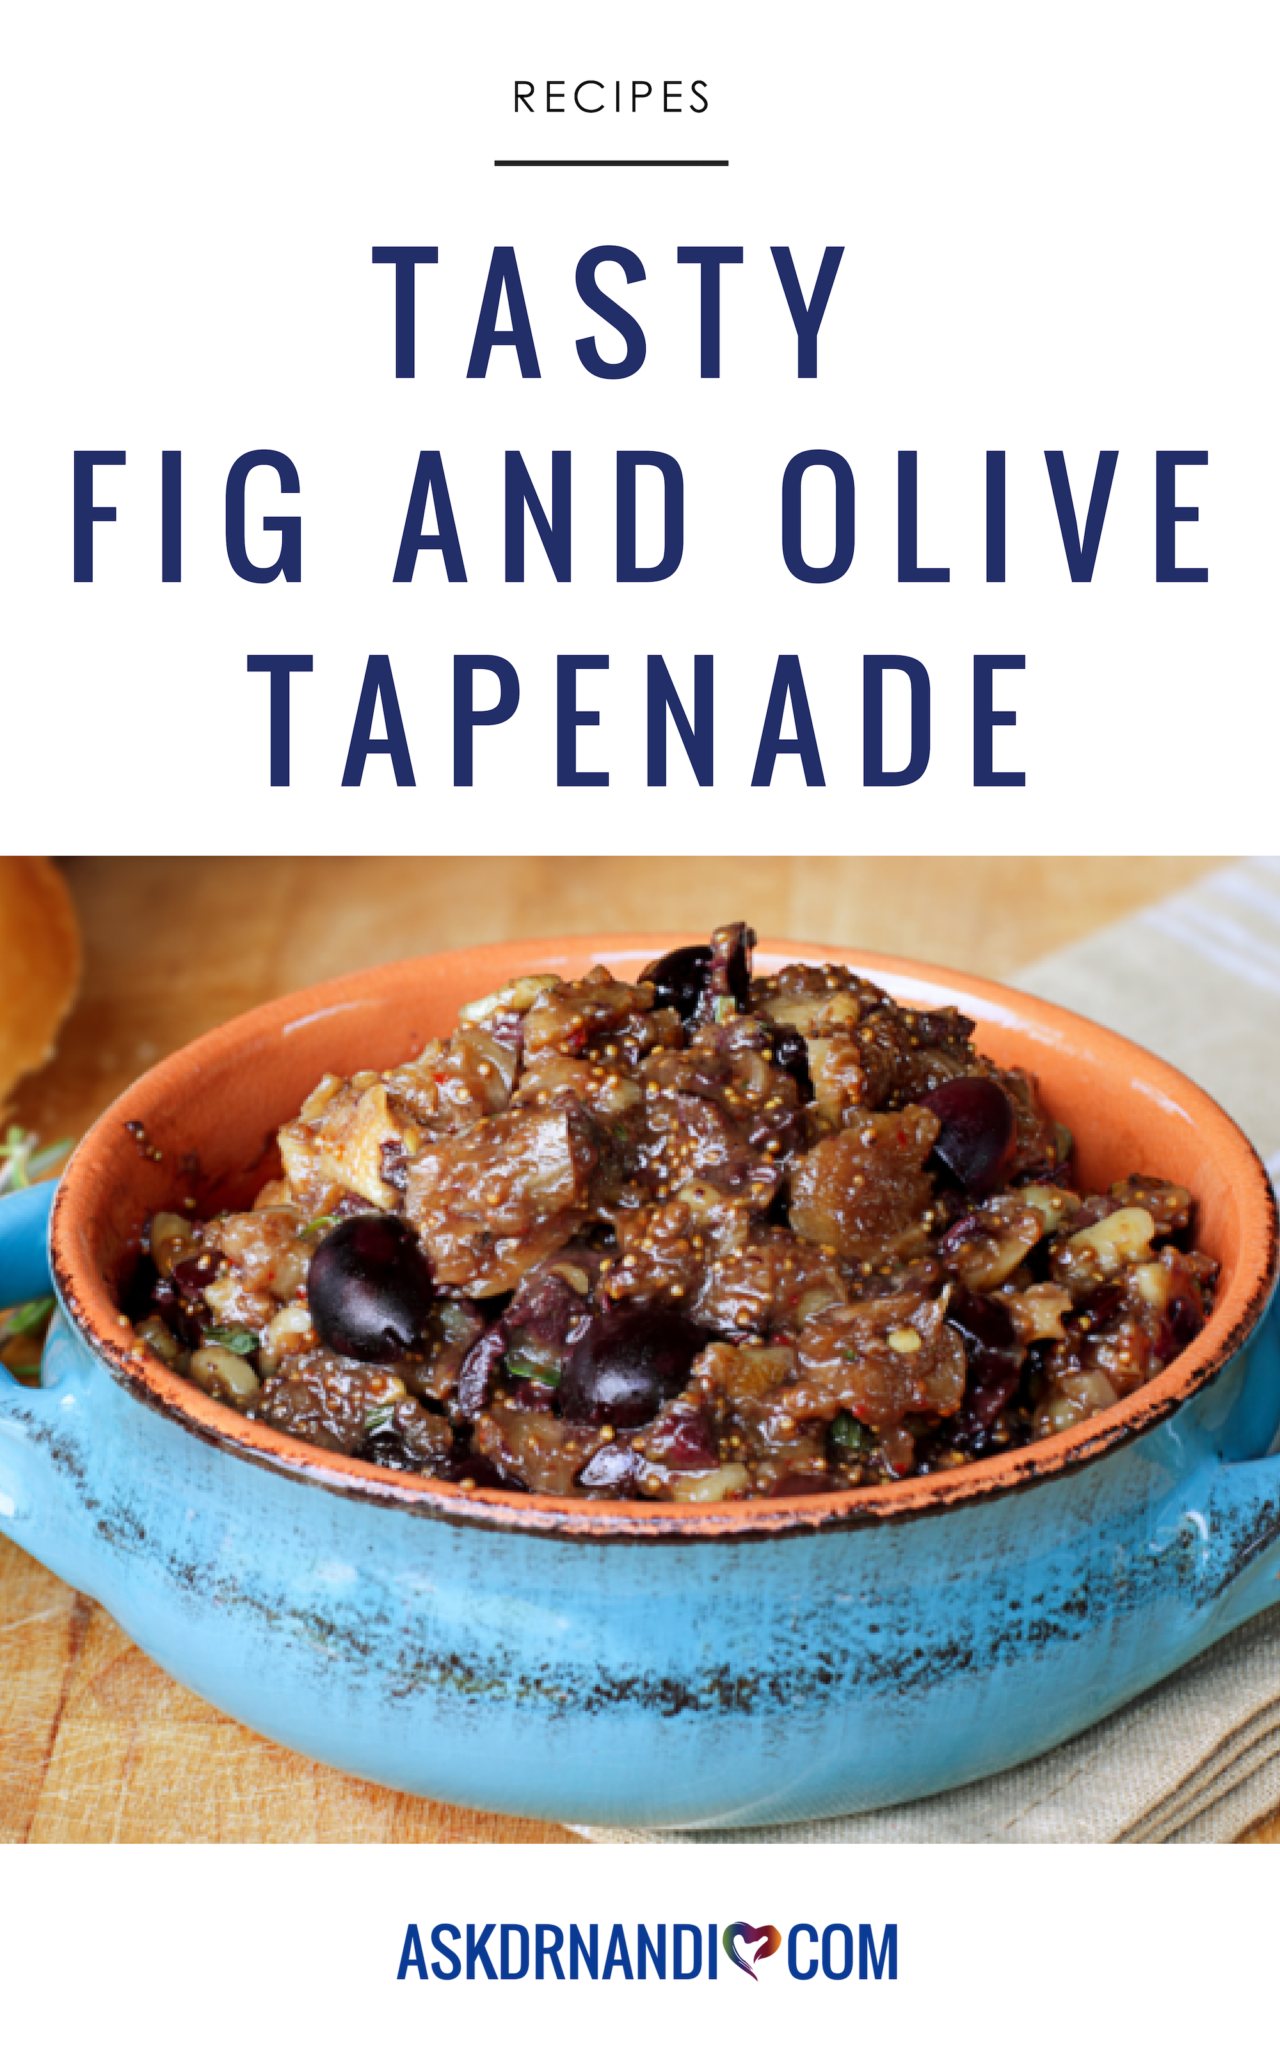 This Fig and Olive Tapenade Recipe is full of fiber, calcium, magnesium, and potassium! Print or Pin it and save it forever!